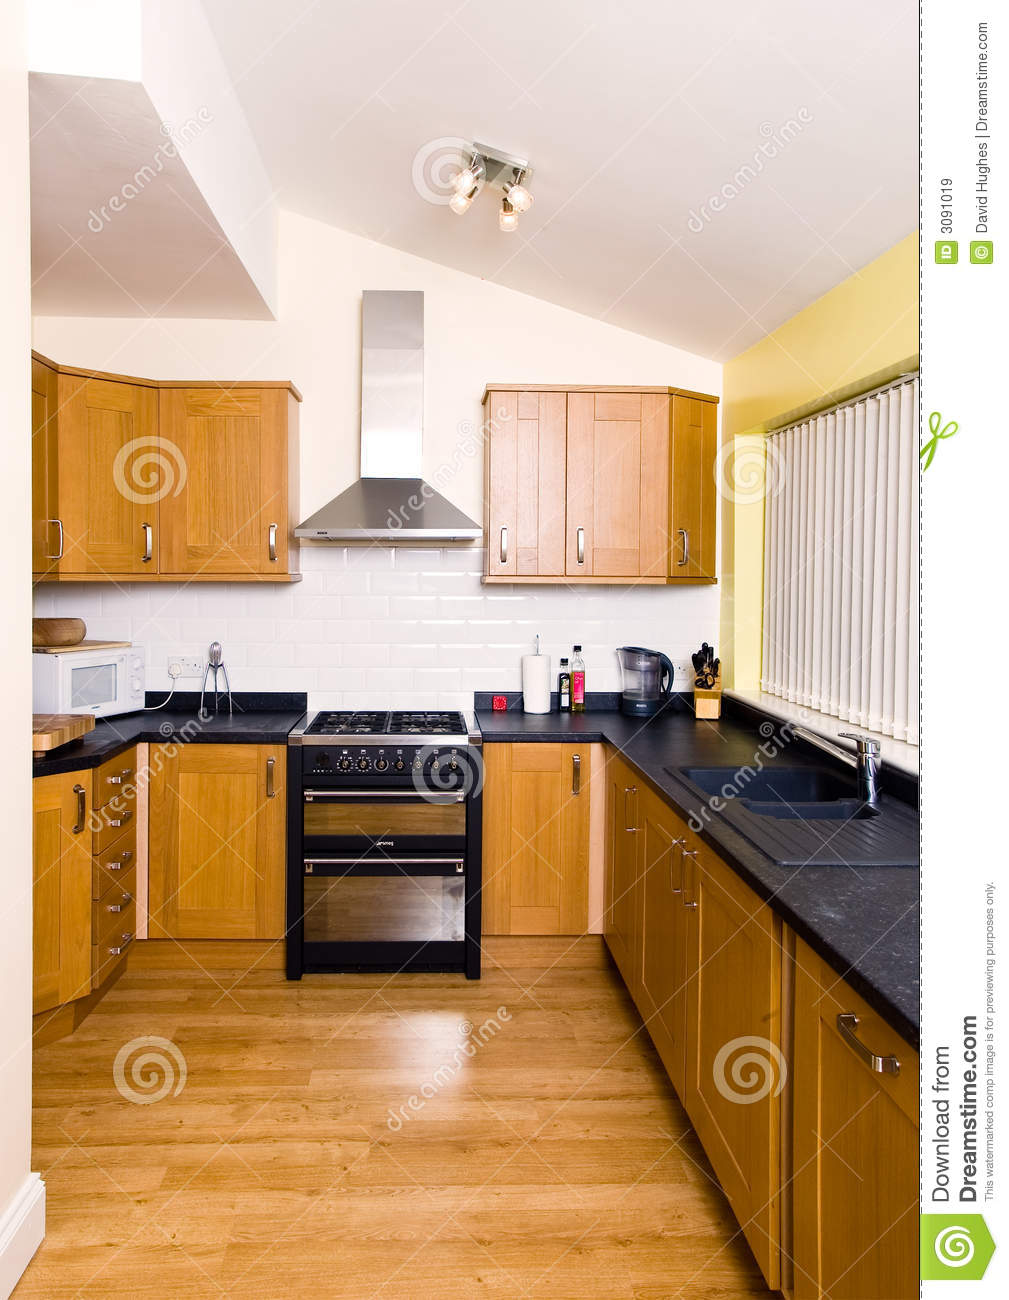 Small fitted kitchen royalty free stock images image for Small fitted kitchens